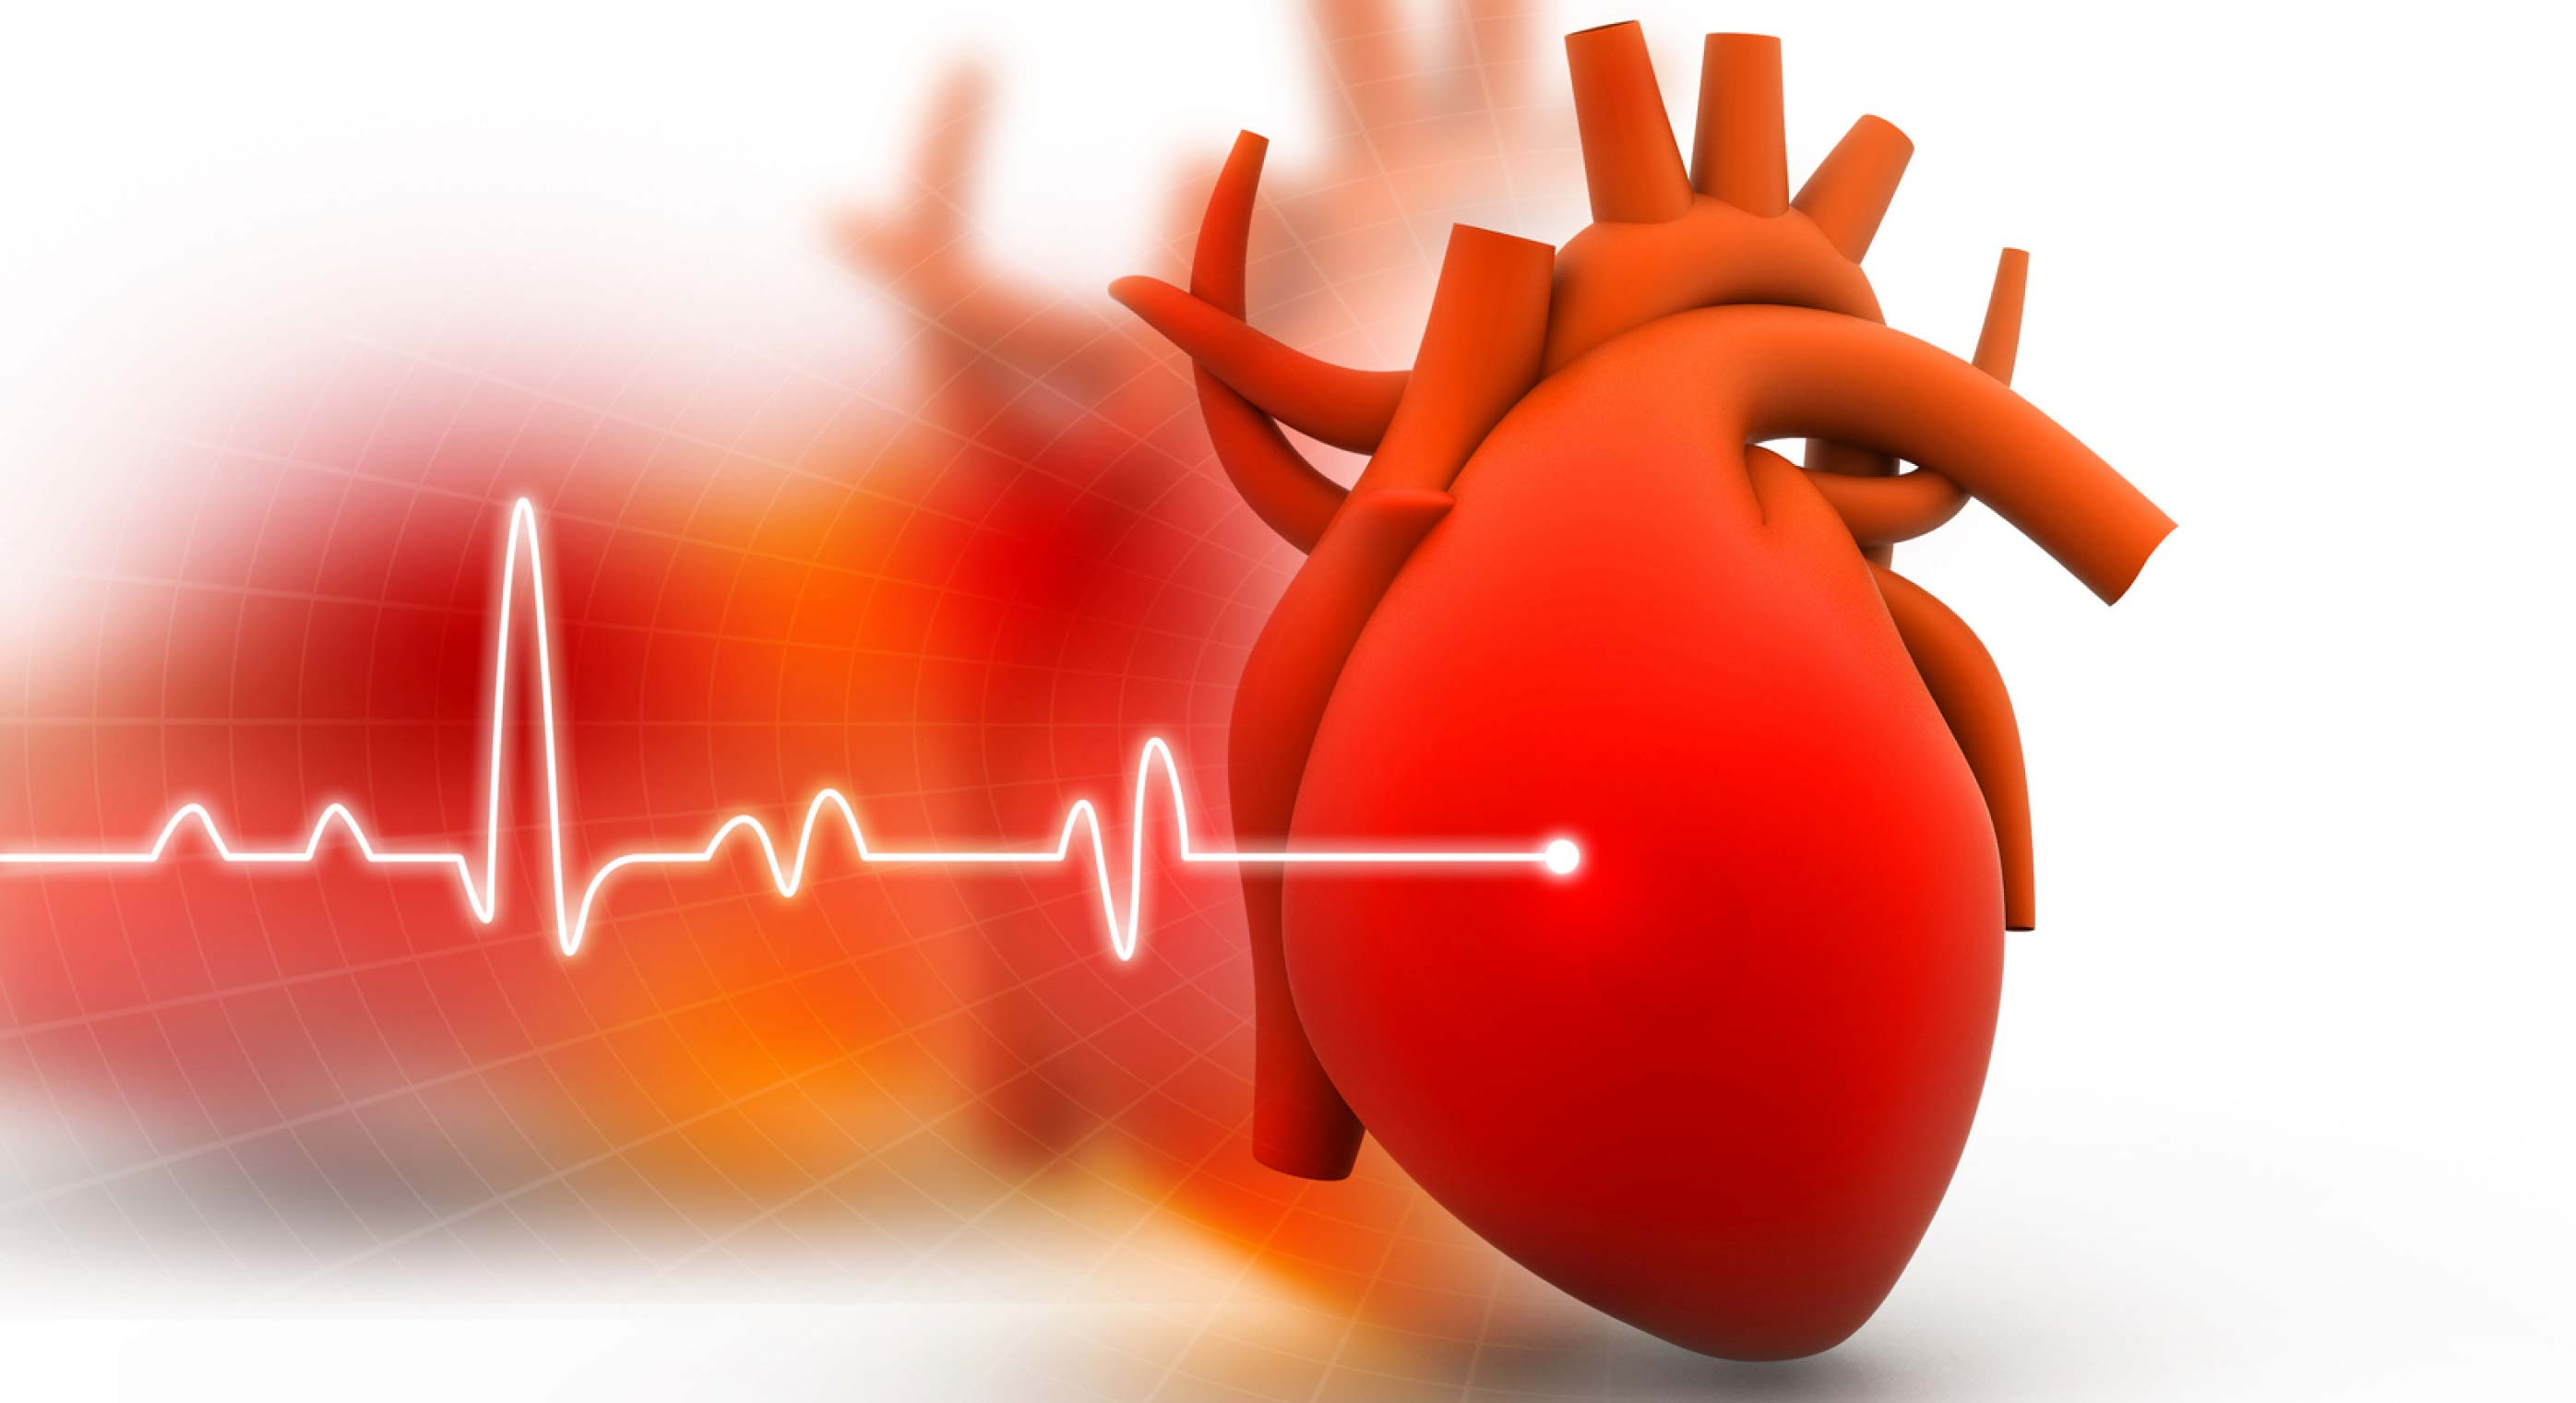 Guidelines Update Heart Failure Prevention Possible With